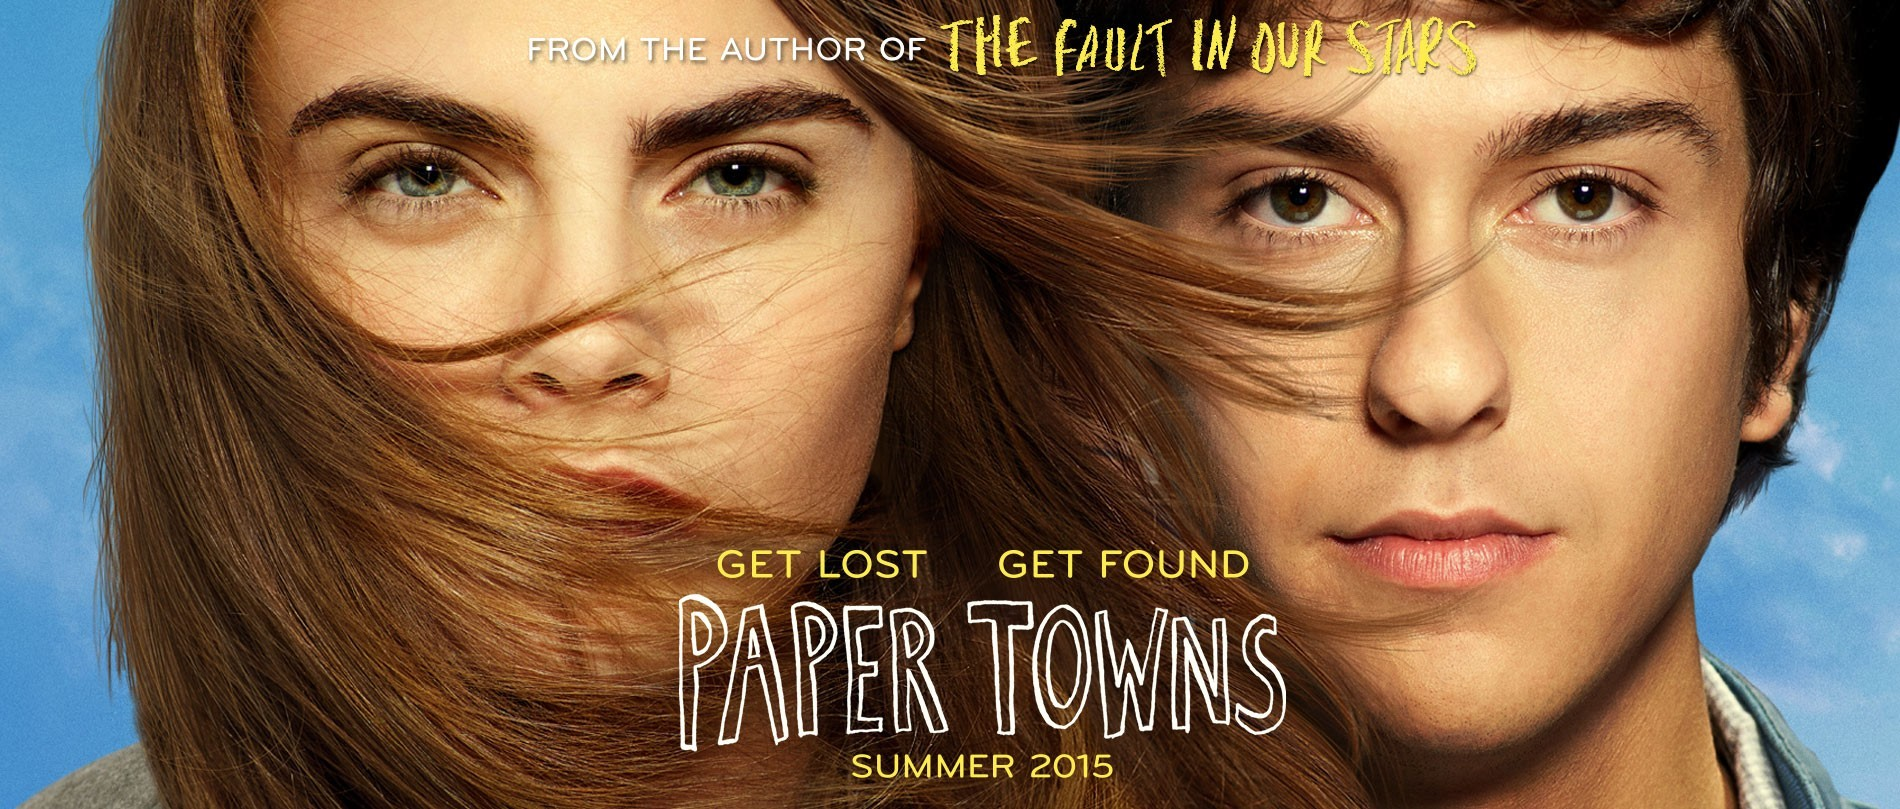 Which Paper Towns Character Are You? Playbuzz cded ad d  edcec Which Paper Towns Character Are You